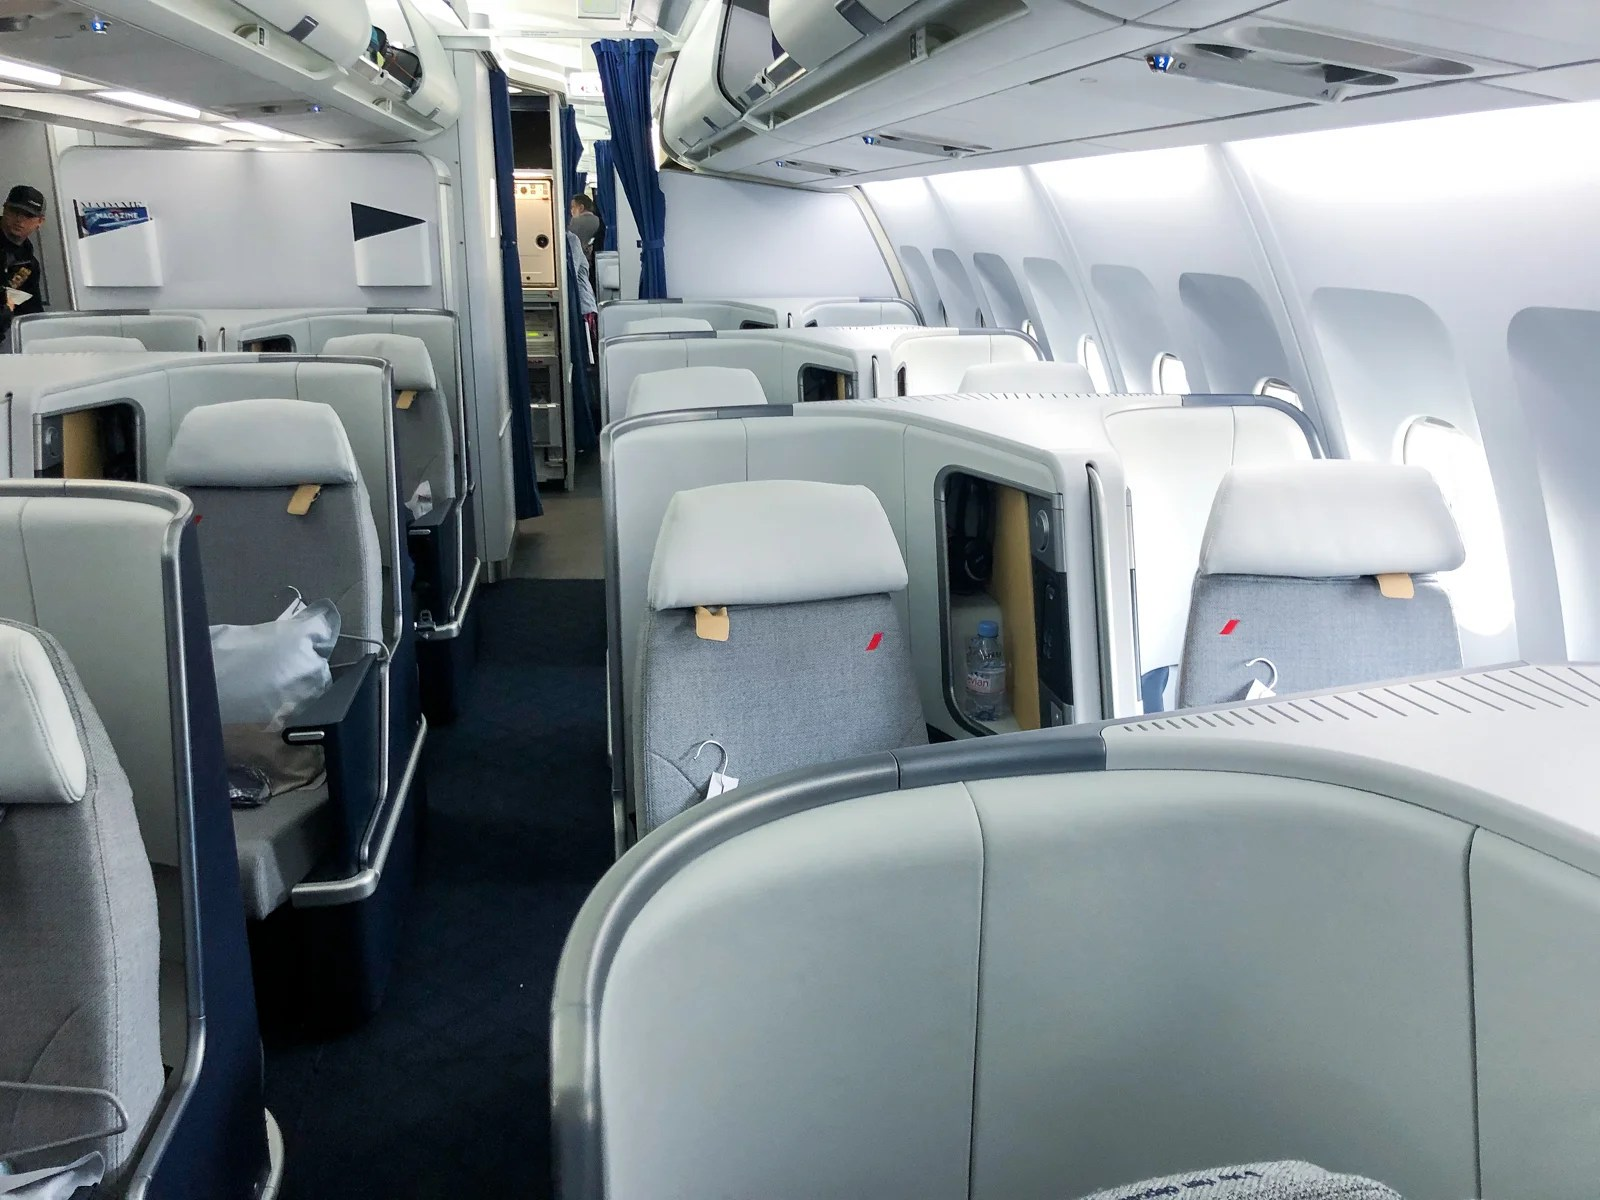 SkyTeam deal alert: Fly business class to Europe starting at $1,769 R/T